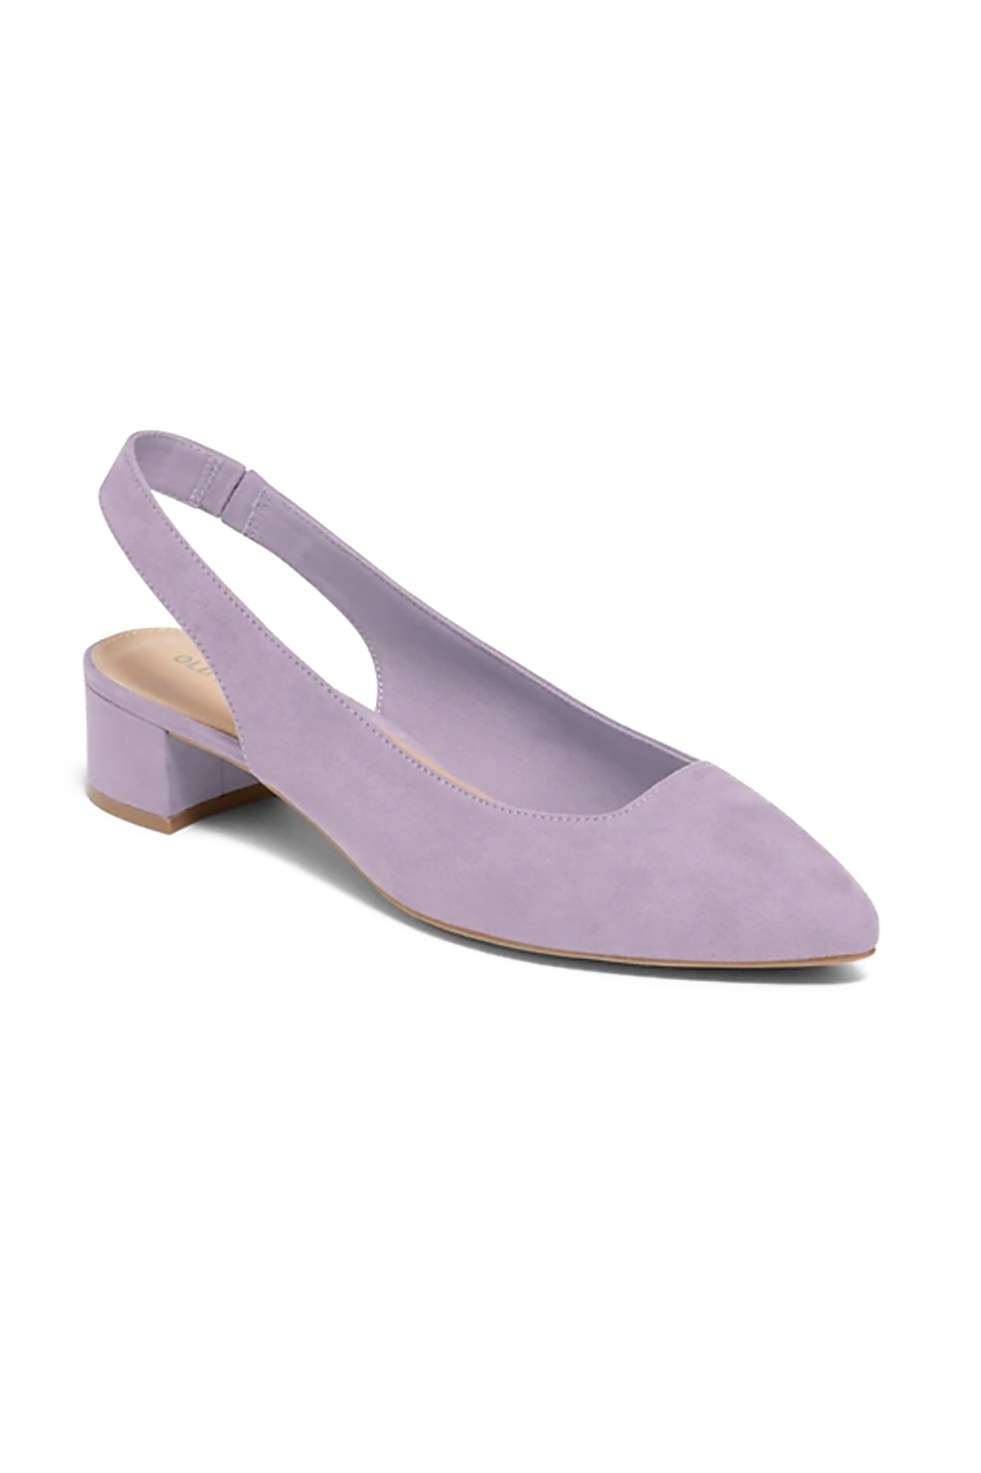 Pastel Perfection Old Navy, $28 SHOP IT The ideal heel for when you stay out morning to night–because you can because the weather is finally nice again.